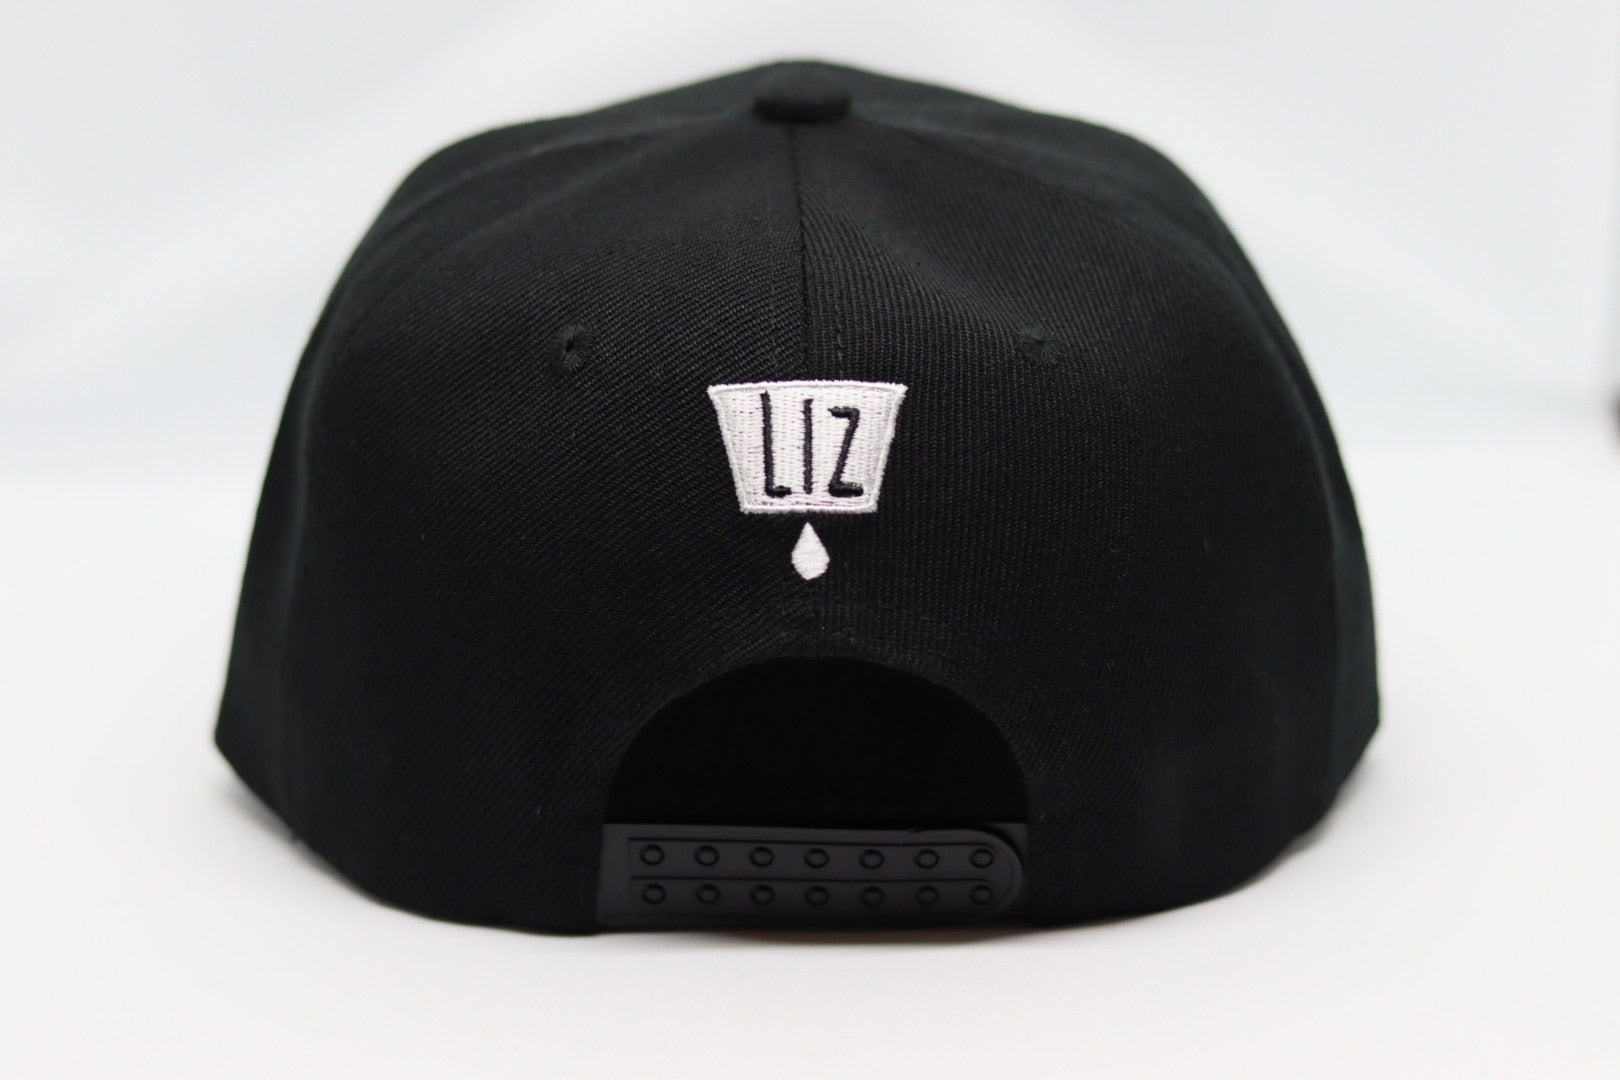 LIZ SINGLE ORIGIN CAP